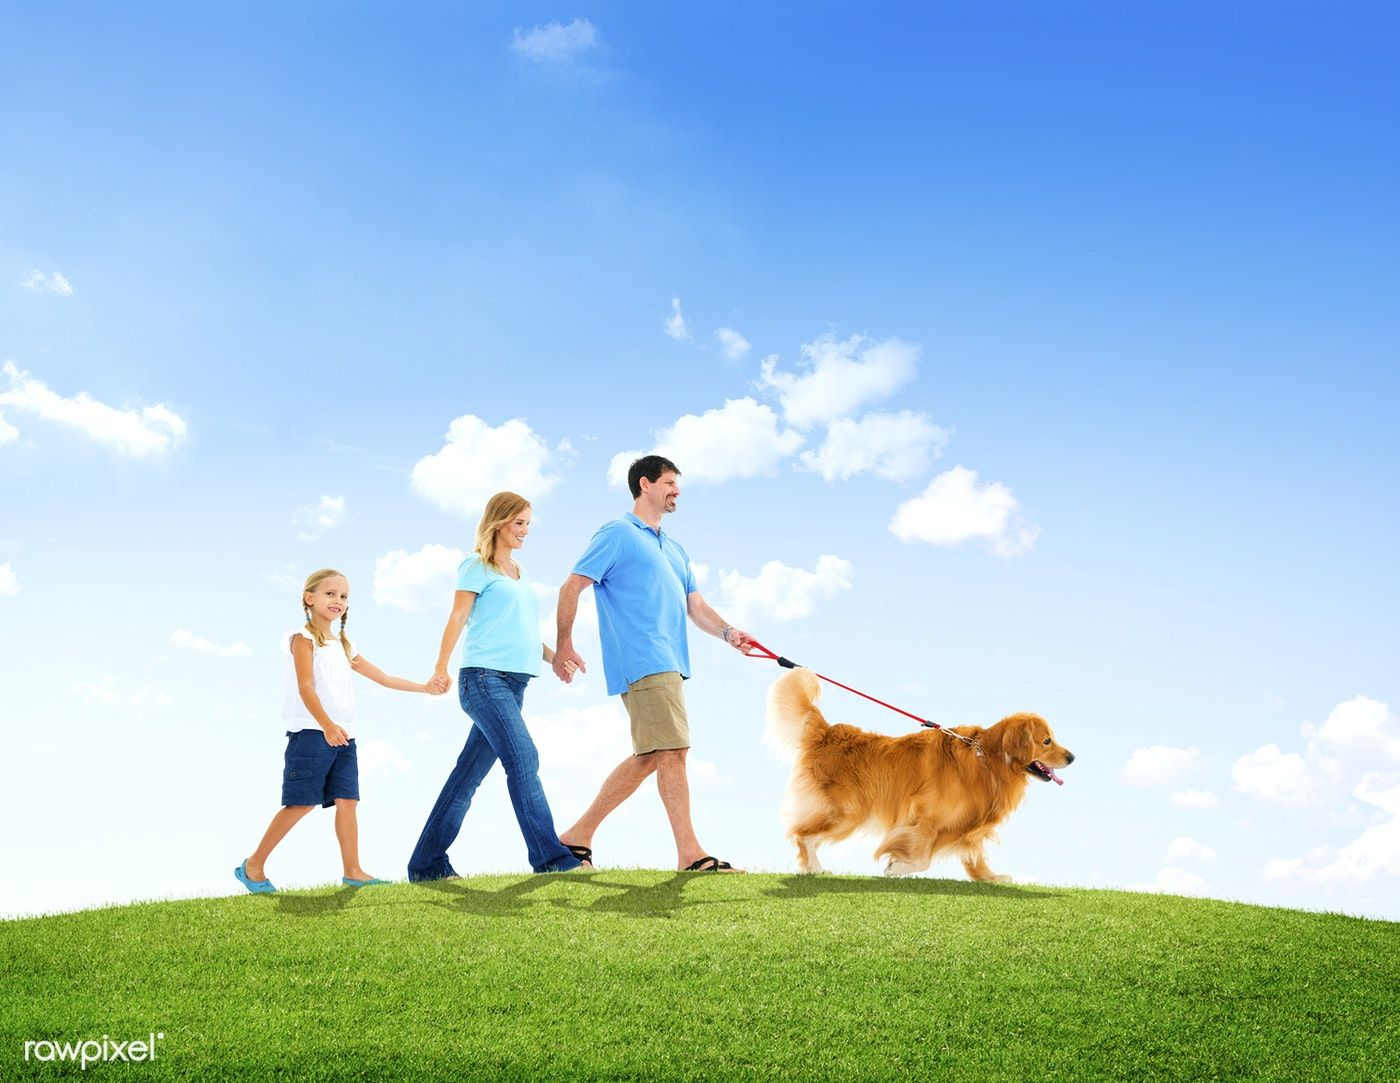 Download premium image of Family Walking Together with